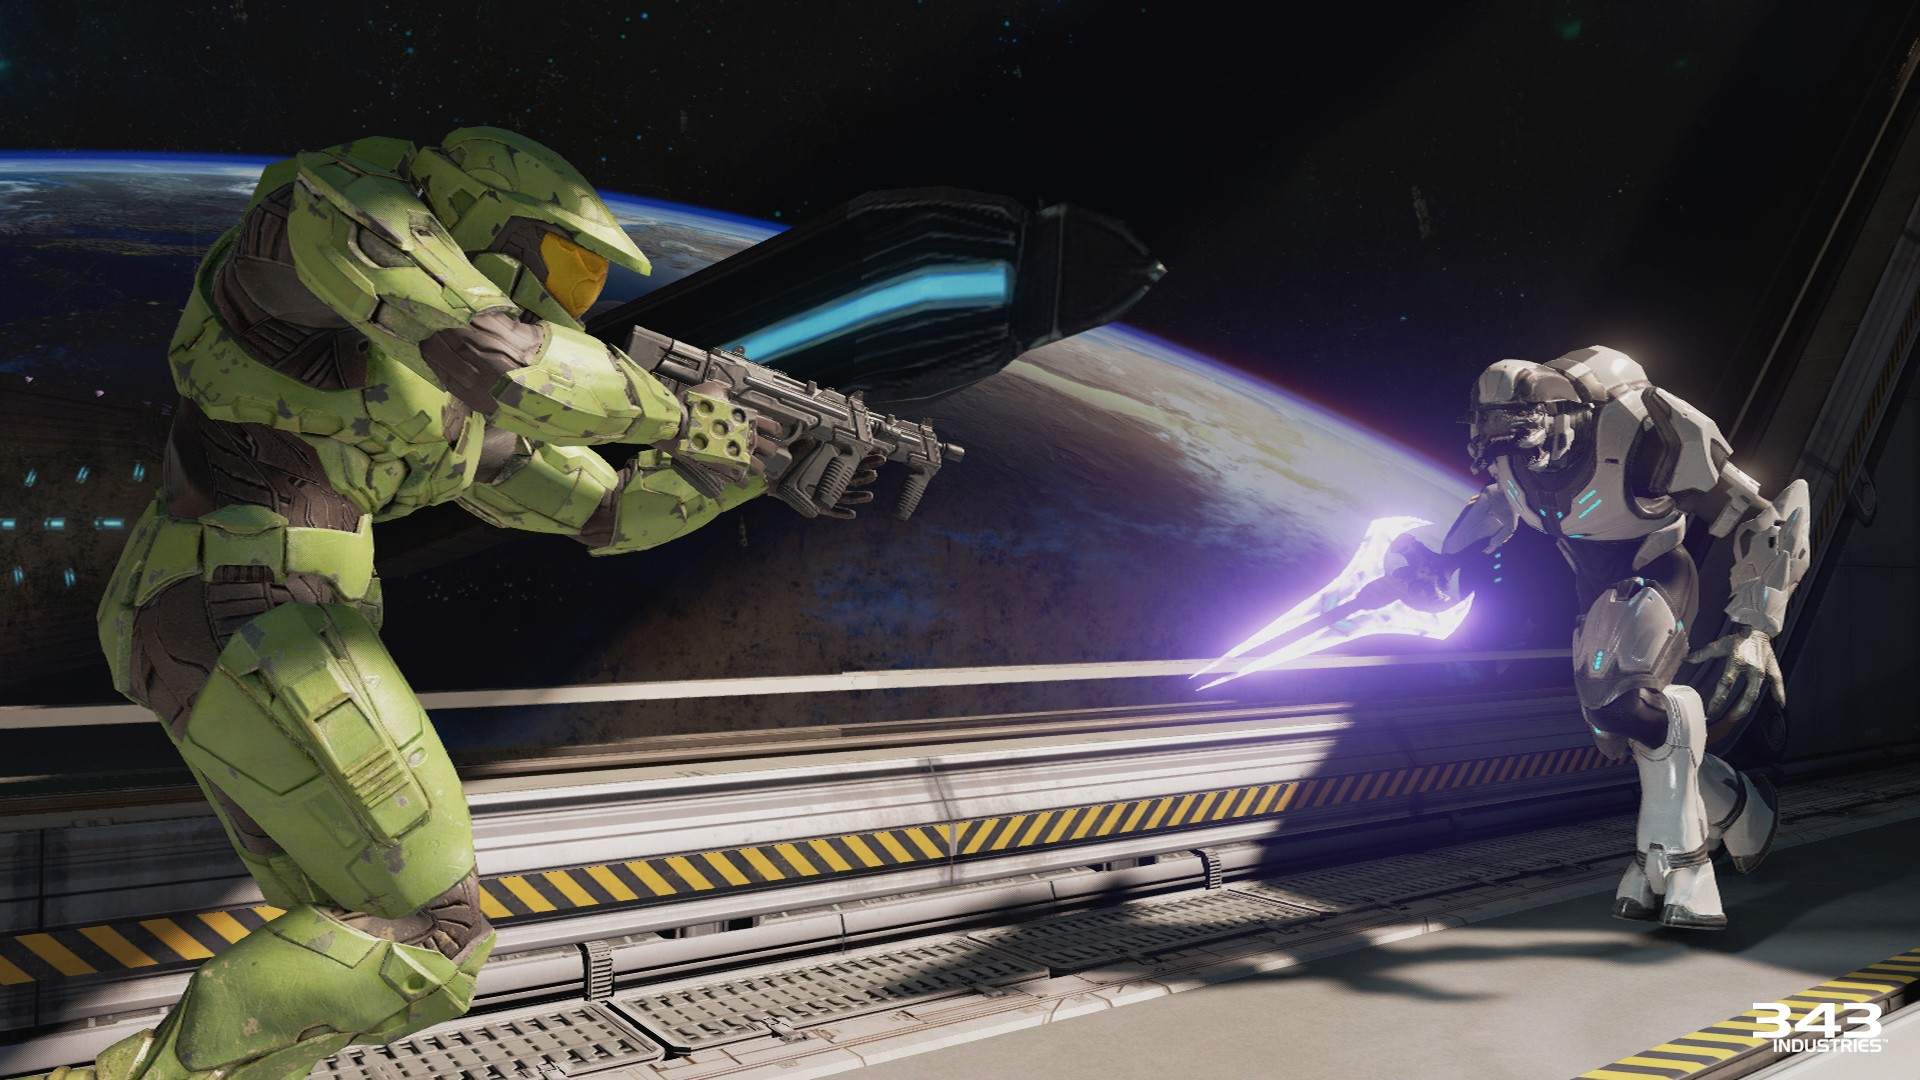 Halo 2 Gets Anniversary Treatment In The Master Chief Collection